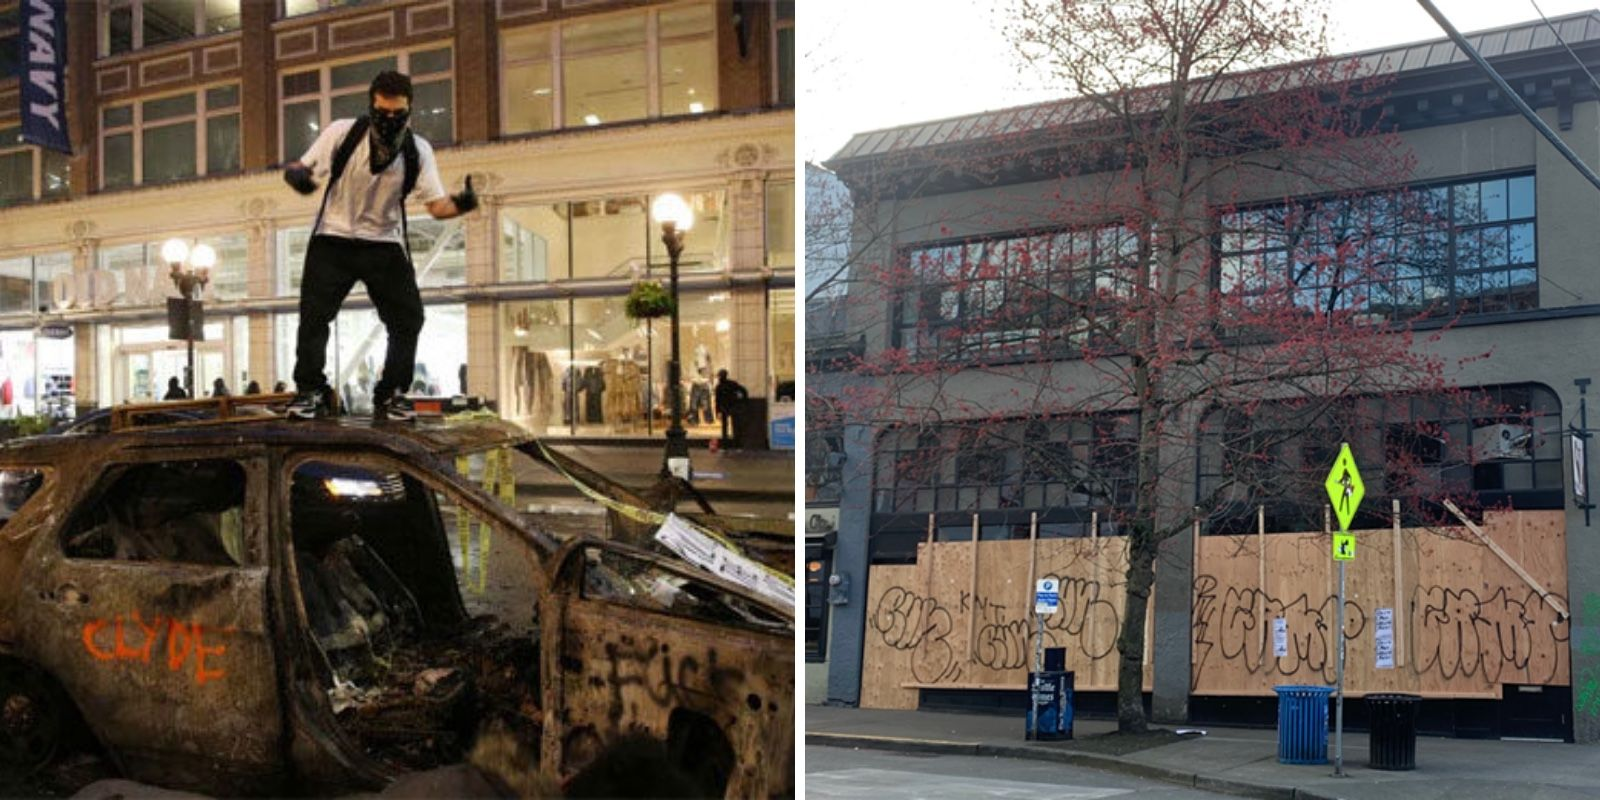 Downtown Seattle loses its only grocery store as businesses flee the city amid COVID and riots